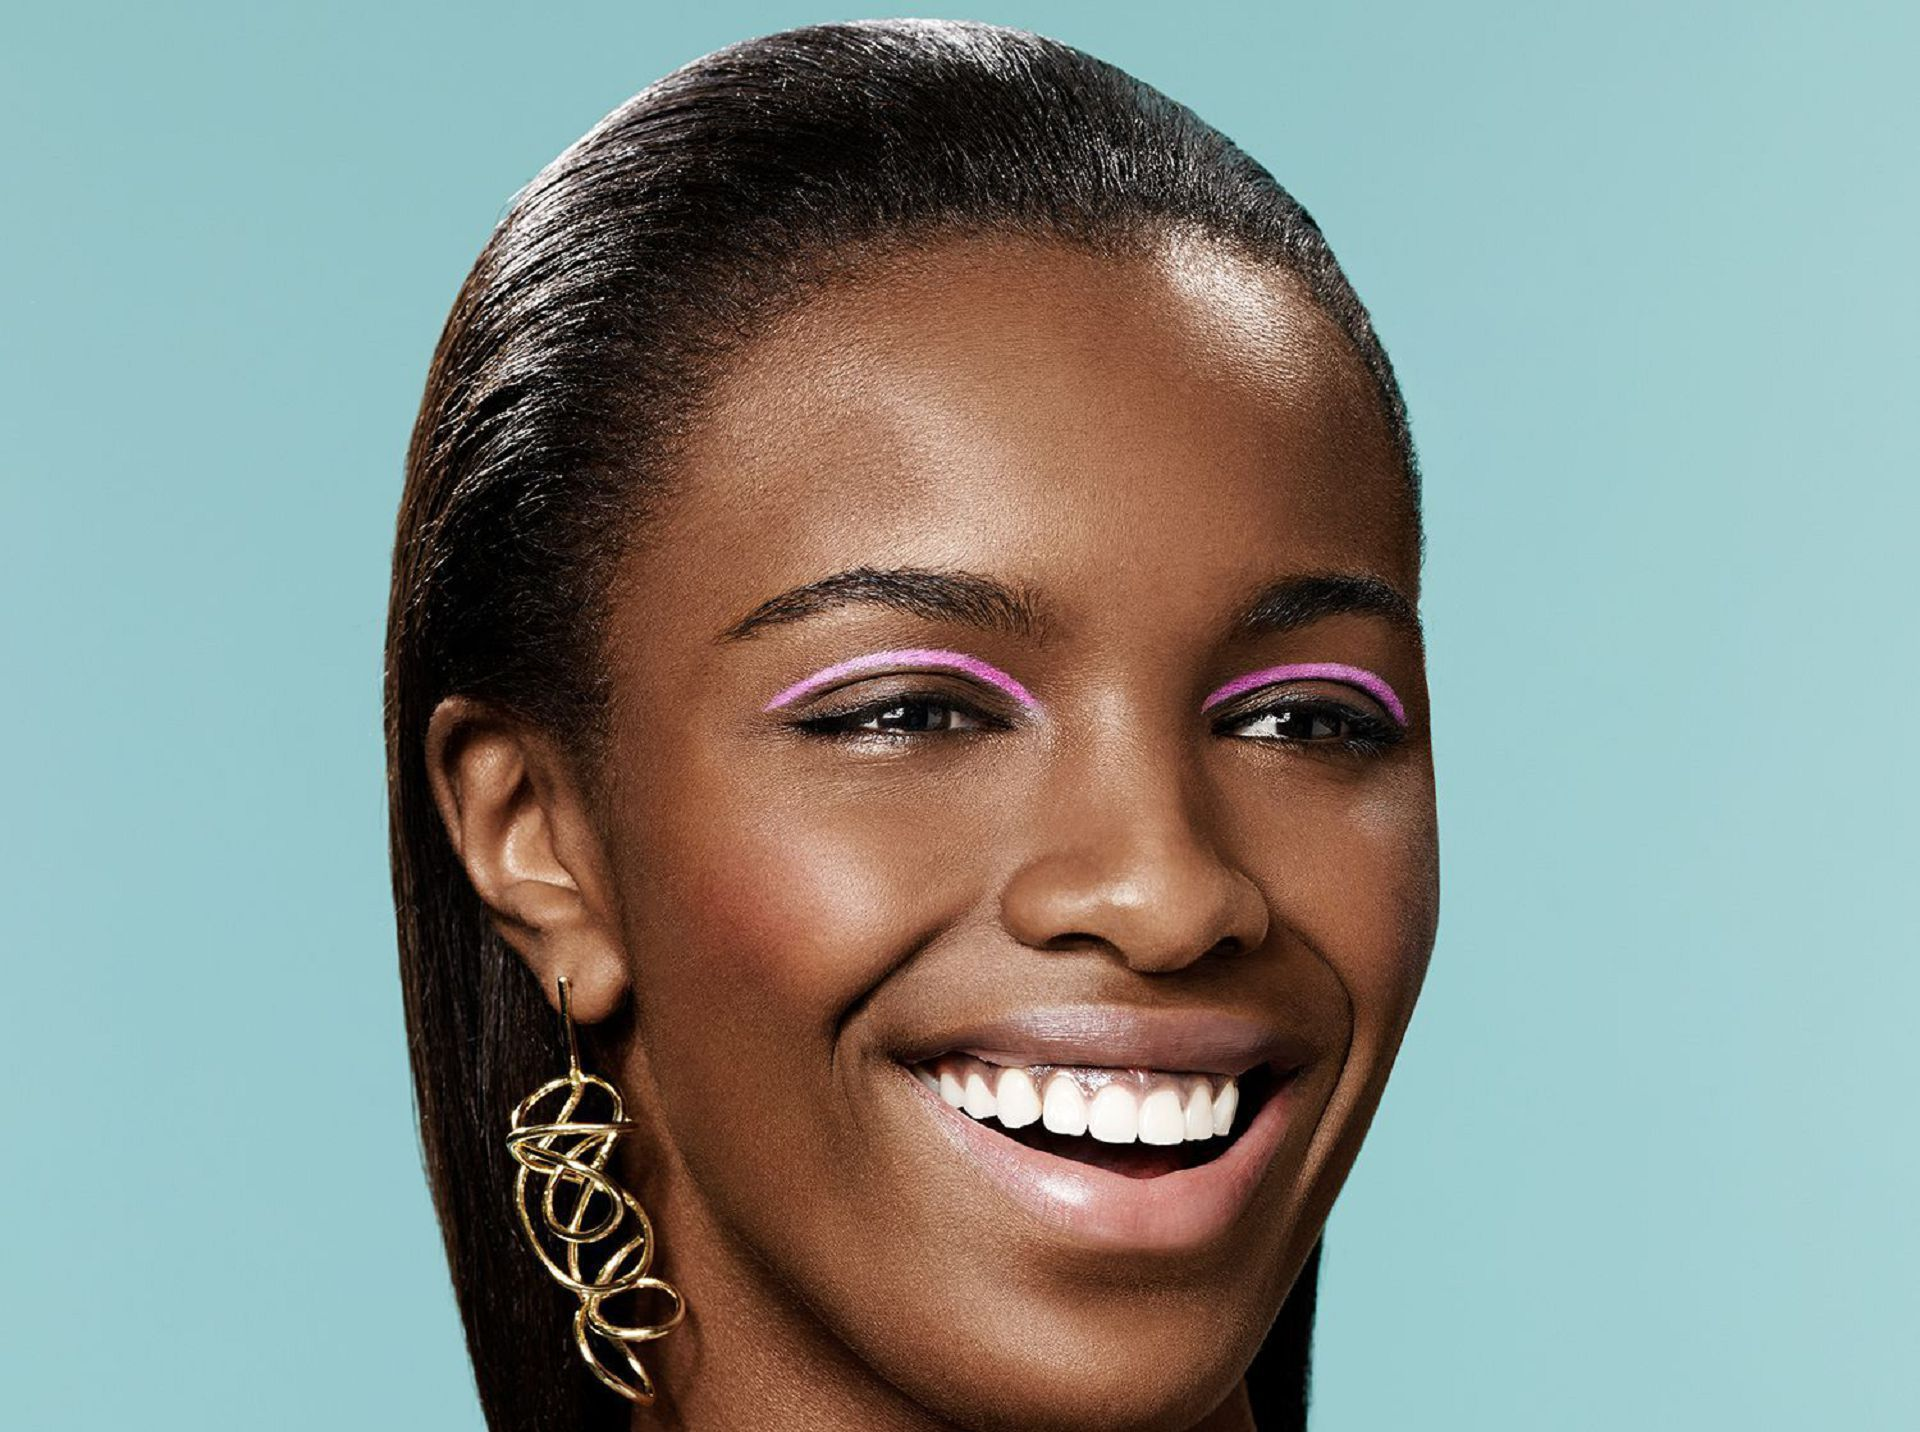 leomie anderson smile wallpaper 66728